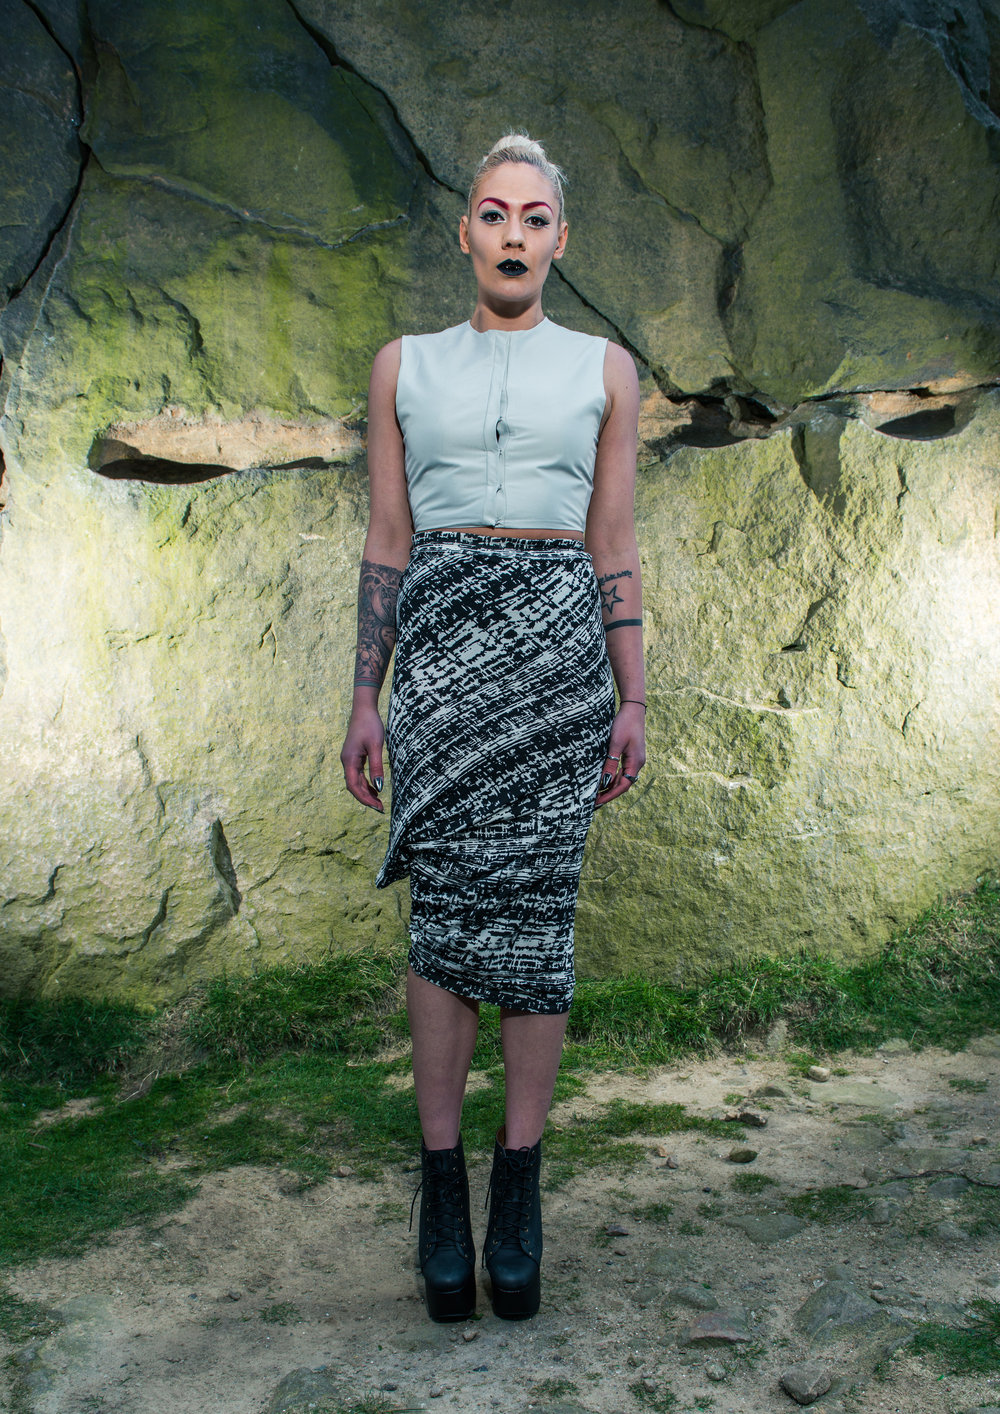 zaramia-ava-zaramiaava-leeds-fashion-designer-ethical-sustainable-tailored-minimalist-aya-grey-print-fitted-bandeau-point-skirt-versatile-drape-cowl-styling-womenswear-models-photoshoot-location-21